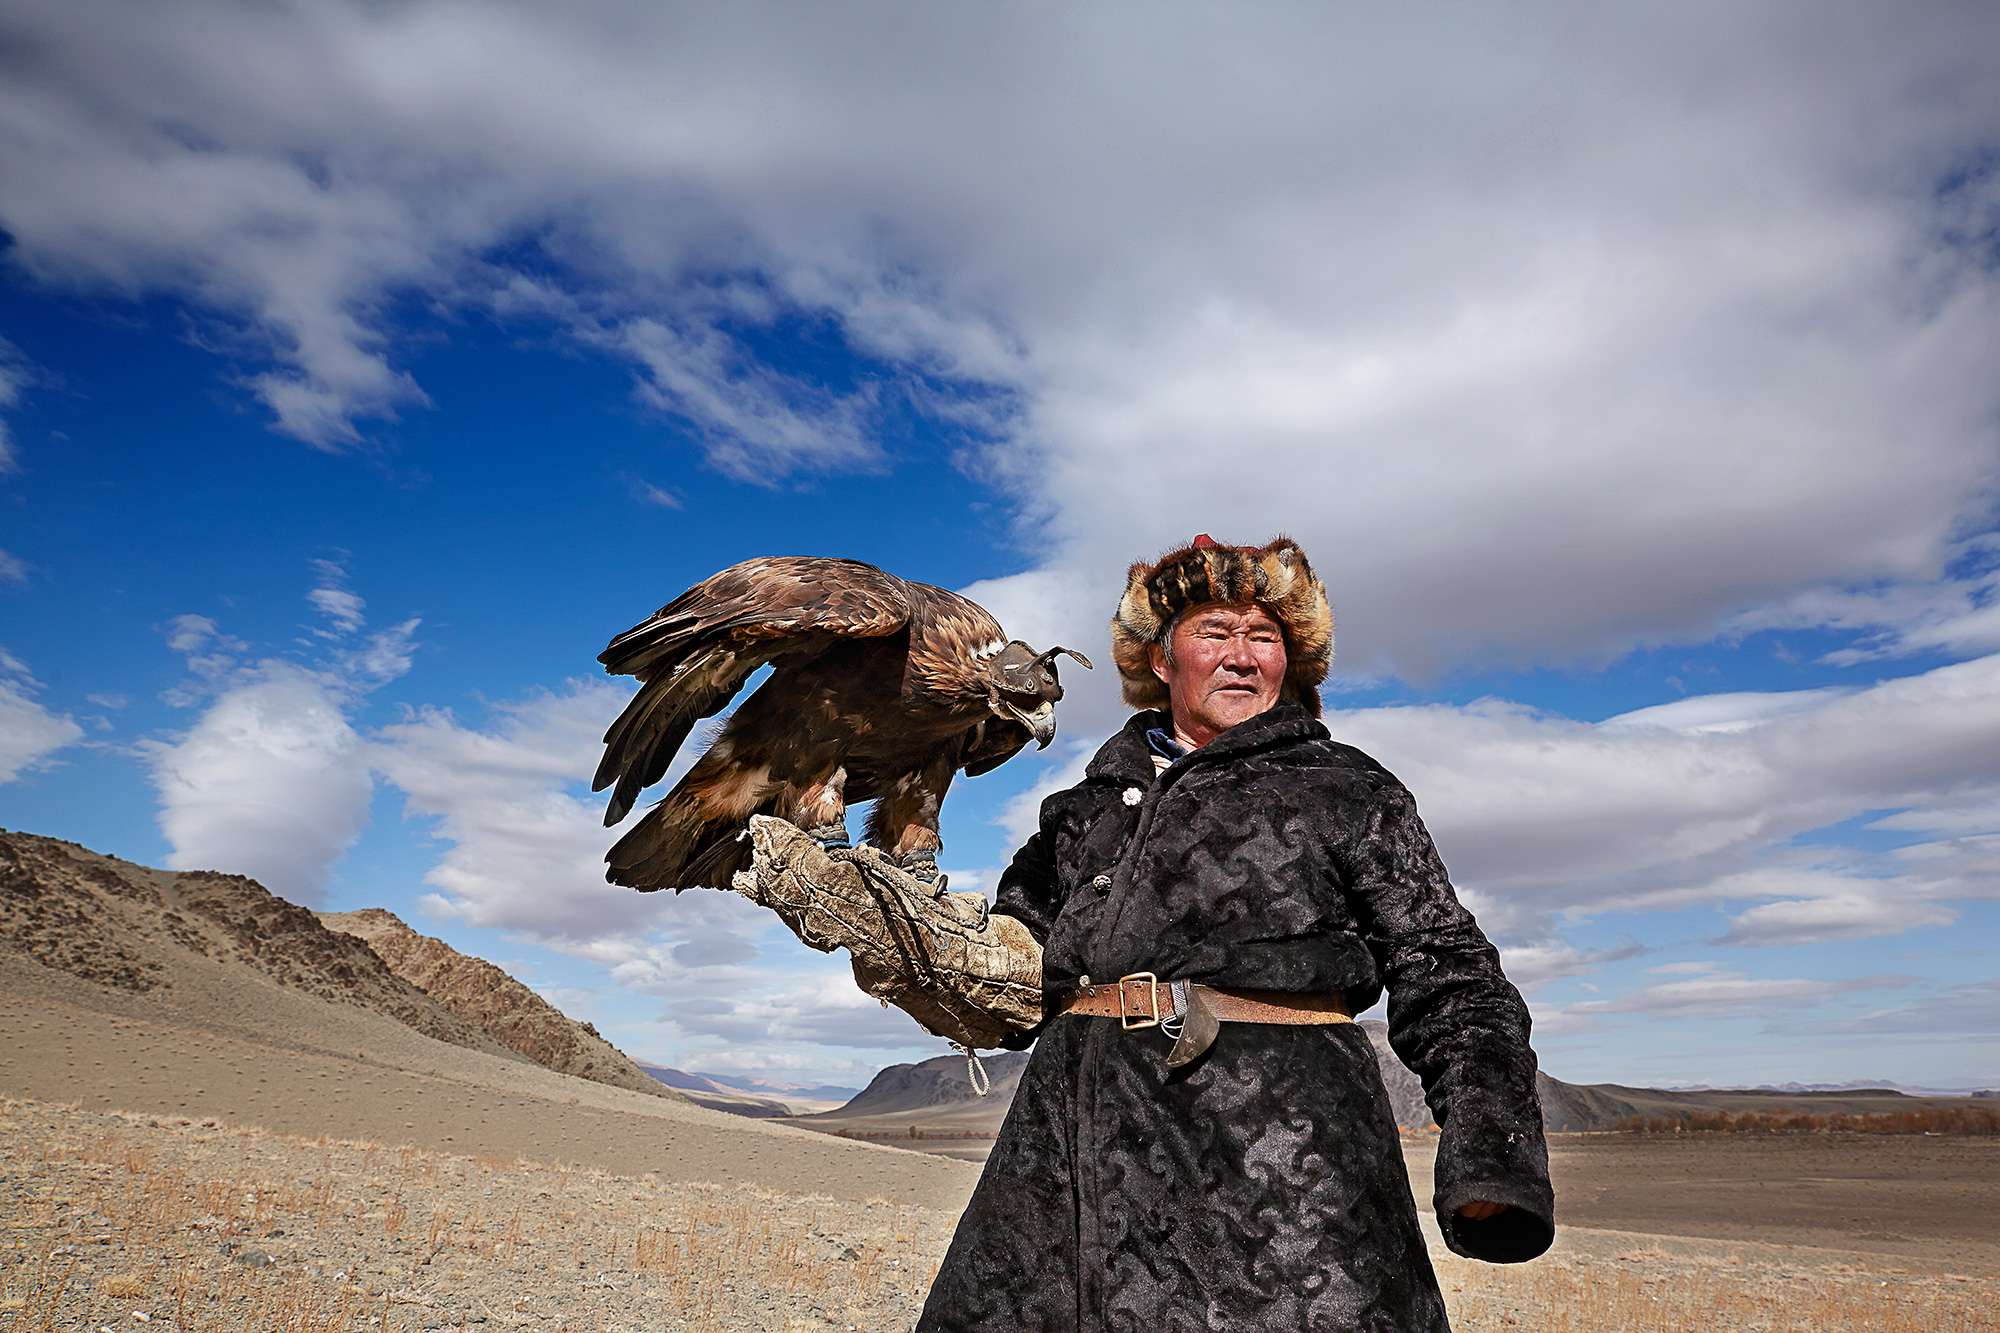 Eagle hunting in Mongolia 03